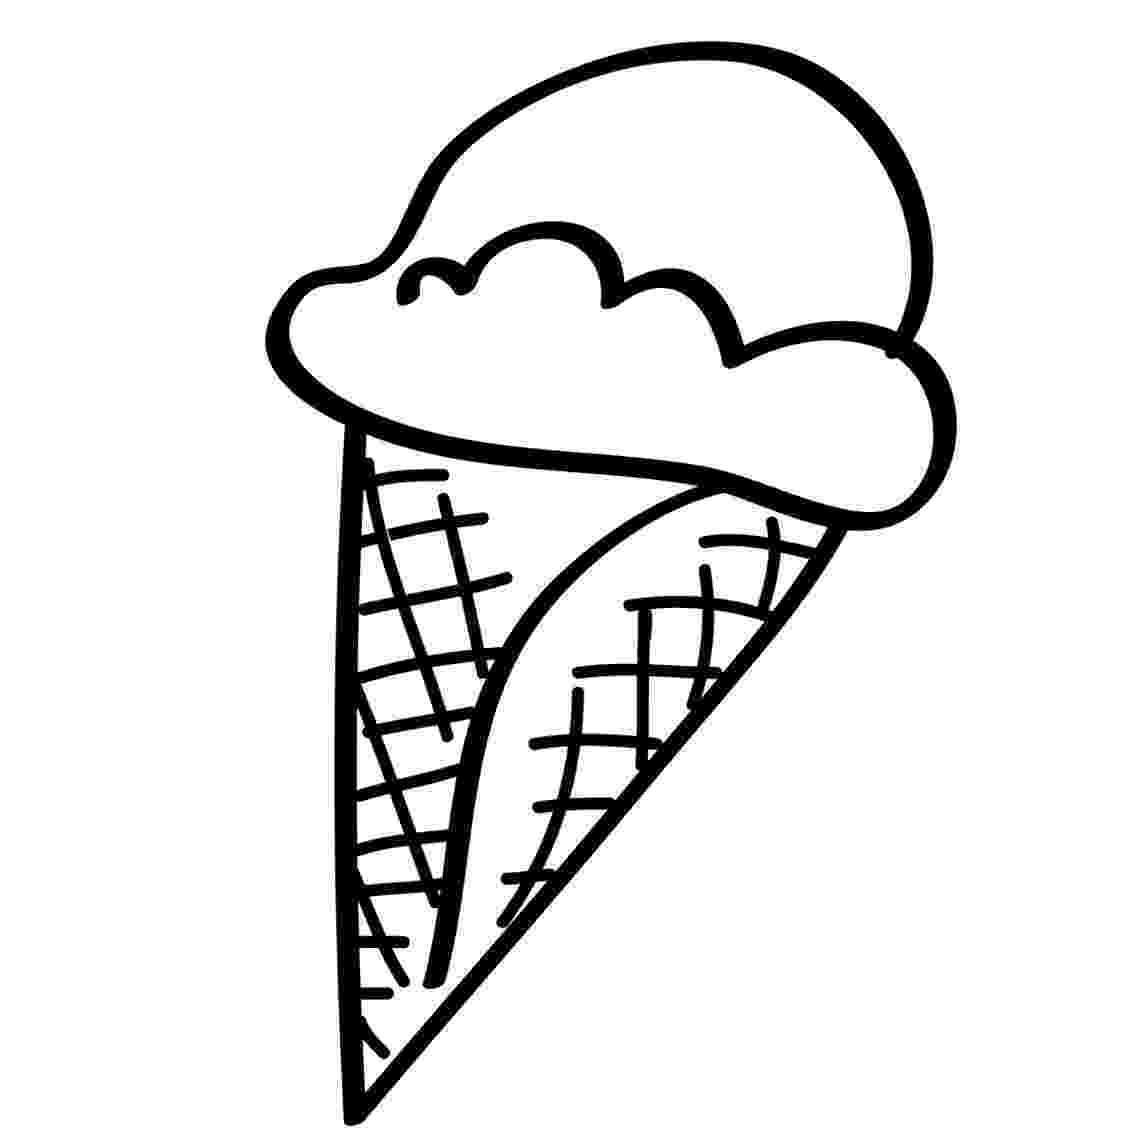 ice cream cone coloring page free printable ice cream coloring pages for kids ice cream coloring cone page